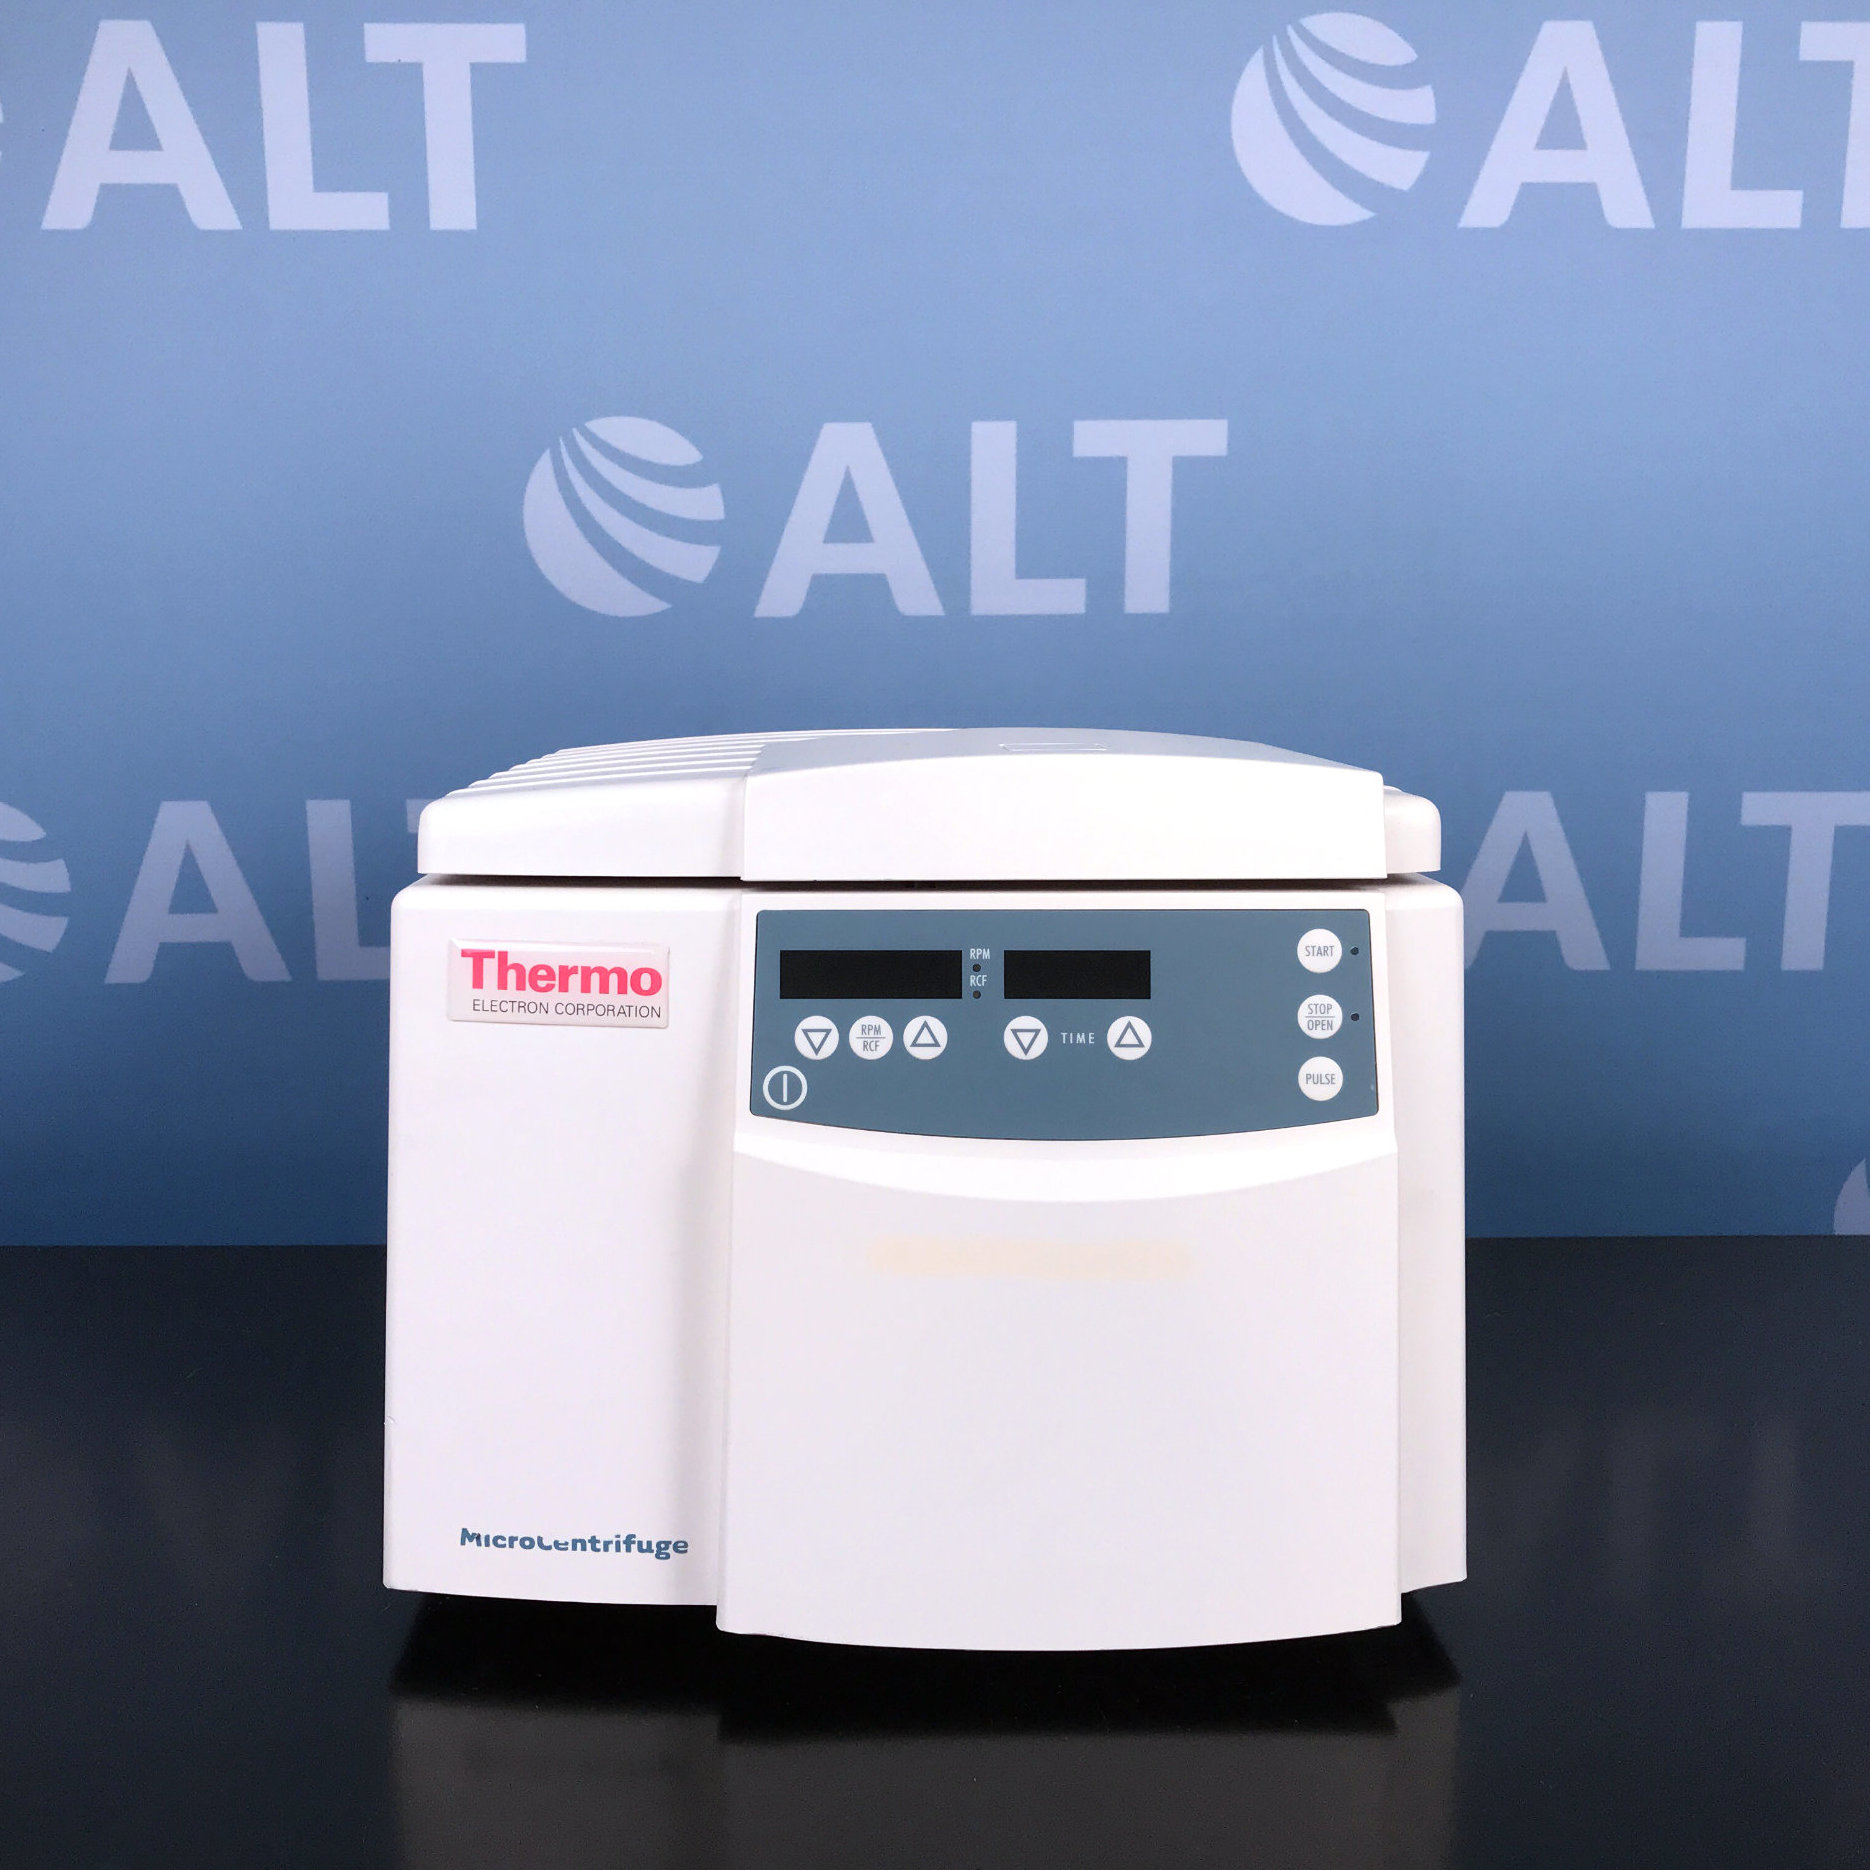 Thermo Electron Corporation Model 5519 Microcentrifuge Image